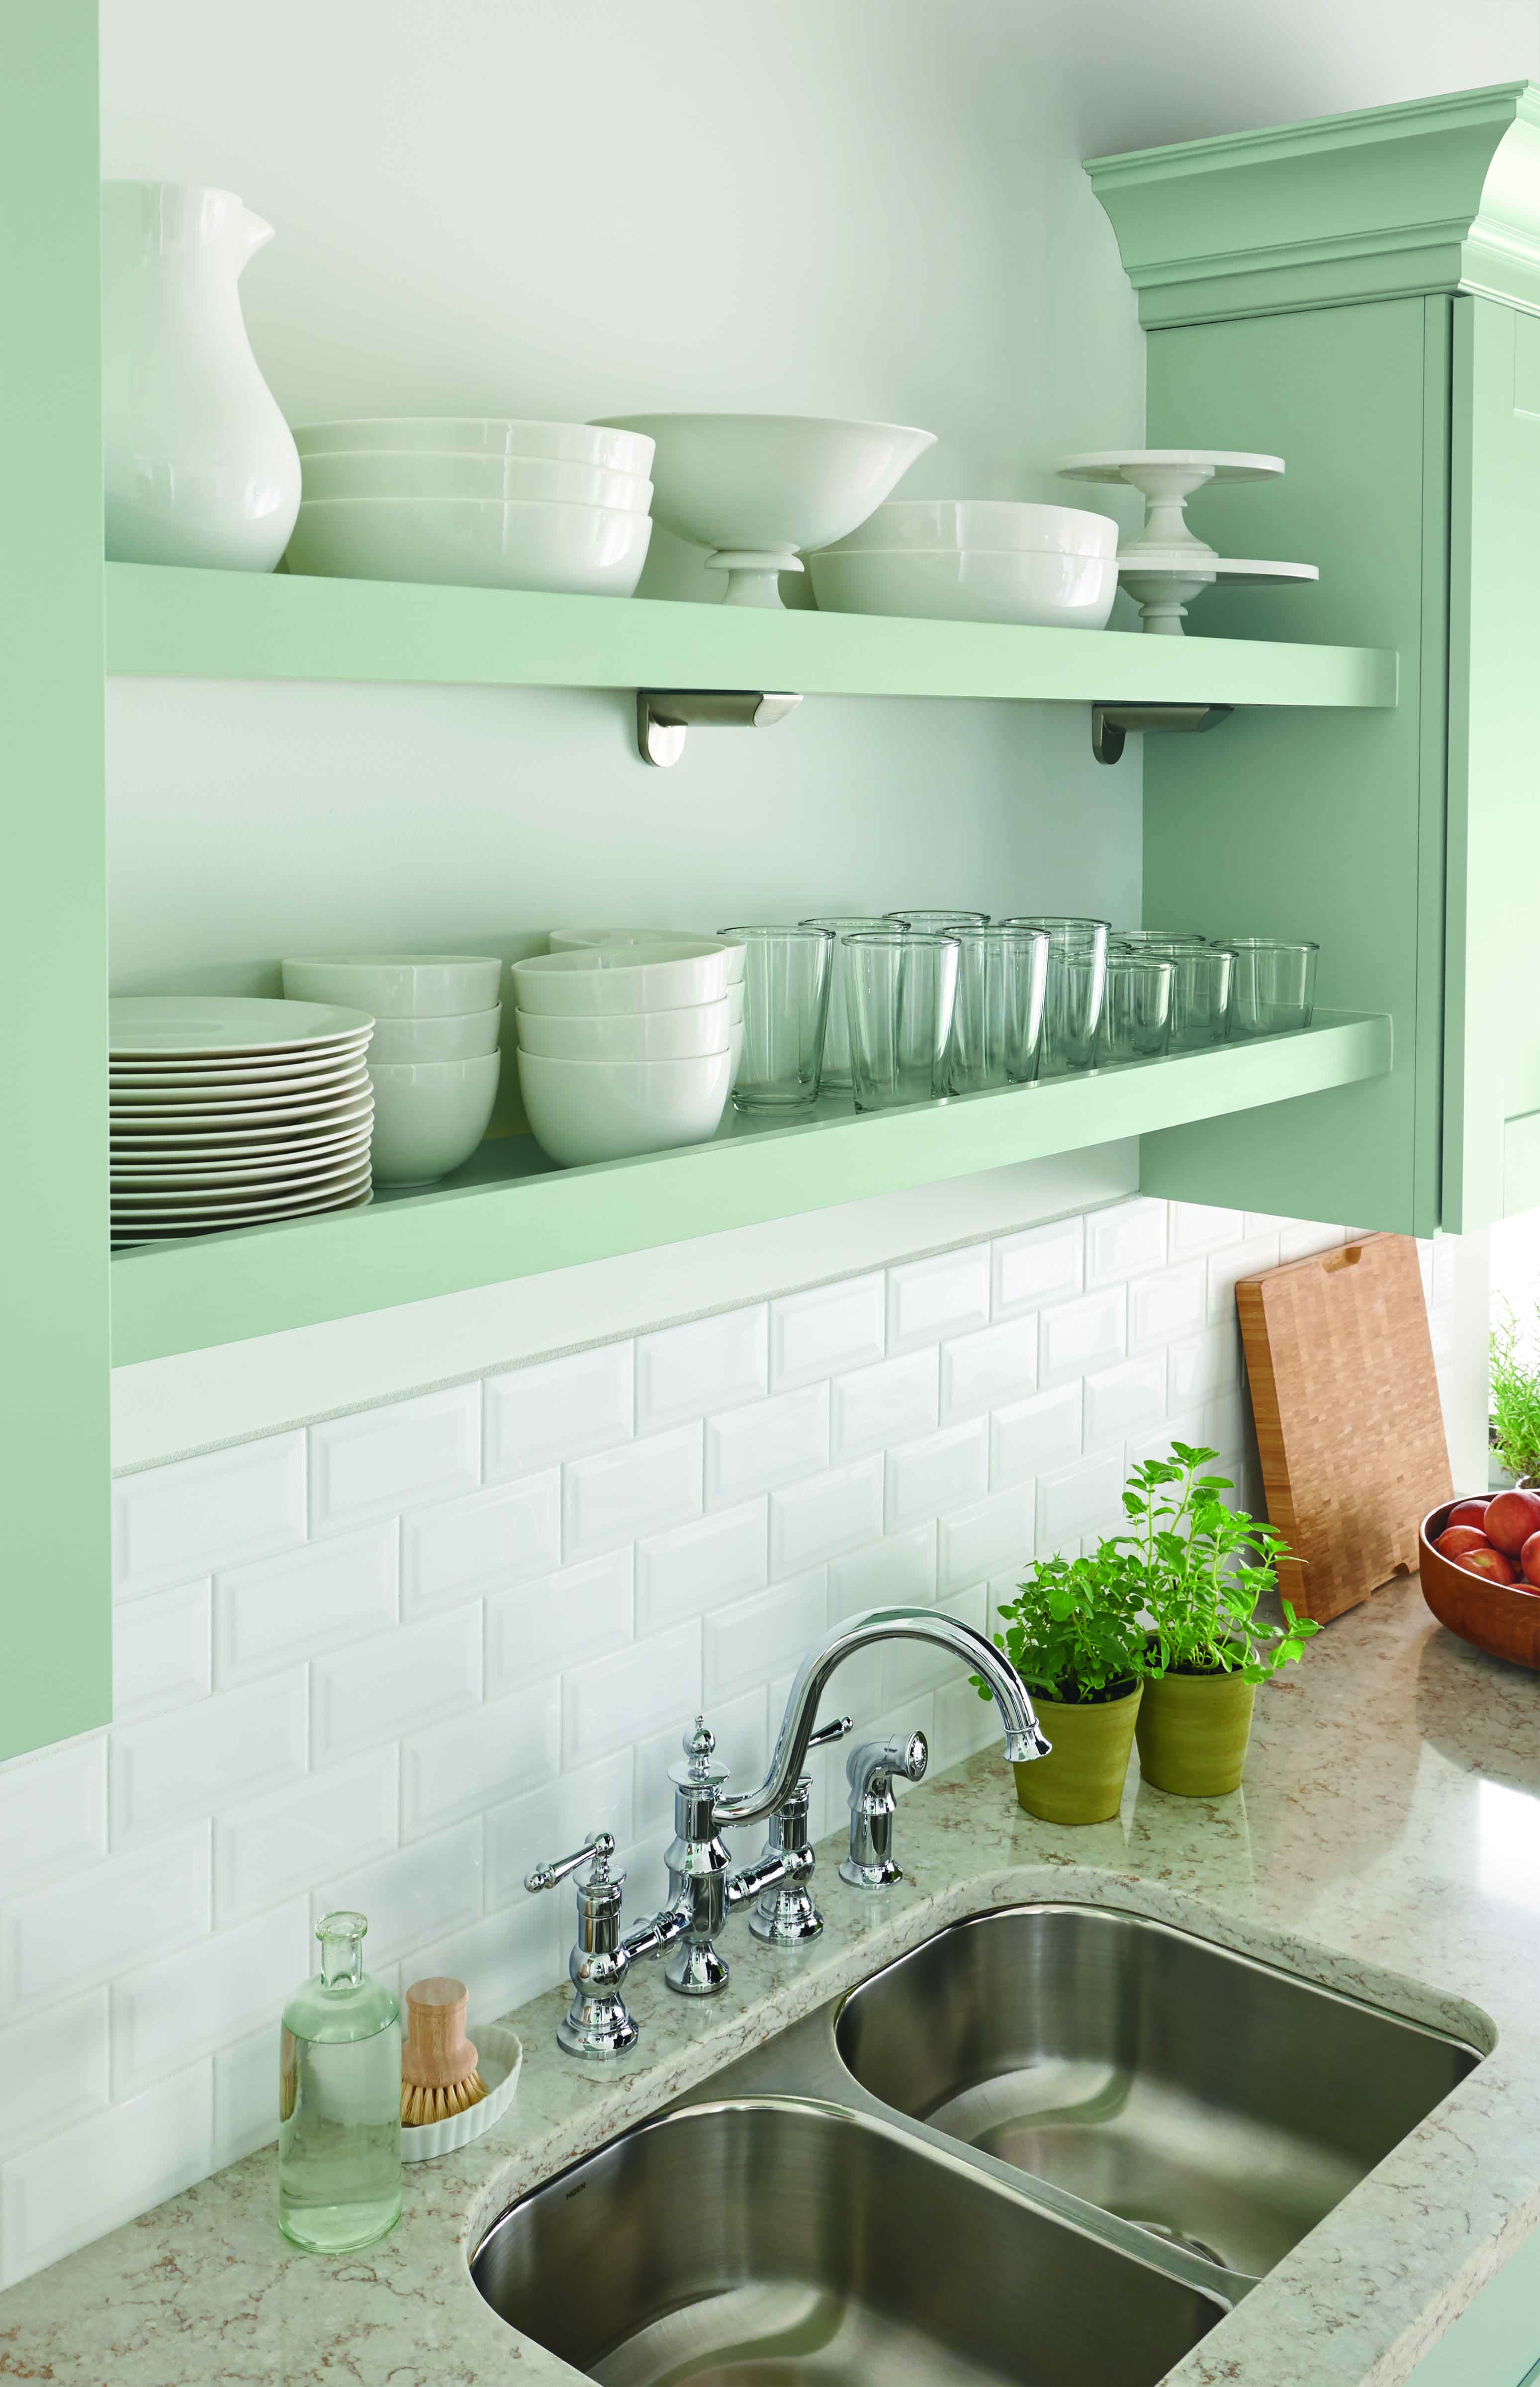 Pin On Organizing Your Kitchen